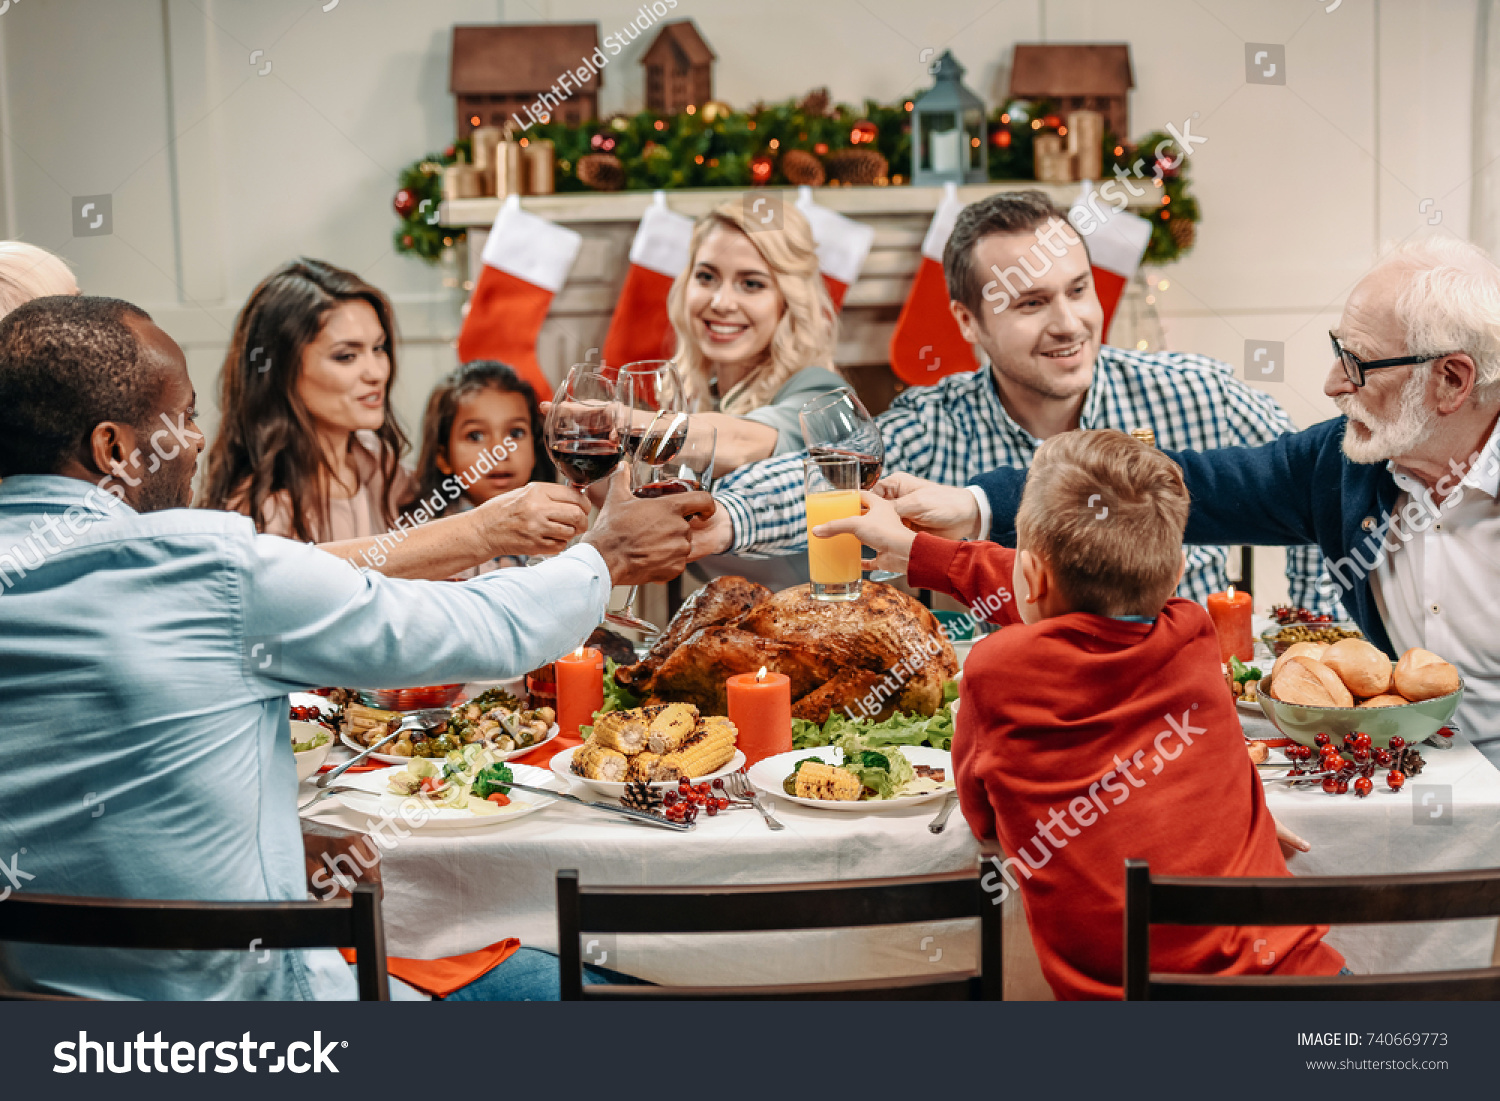 Family Clinking Glasses While Having Christmas Dinner